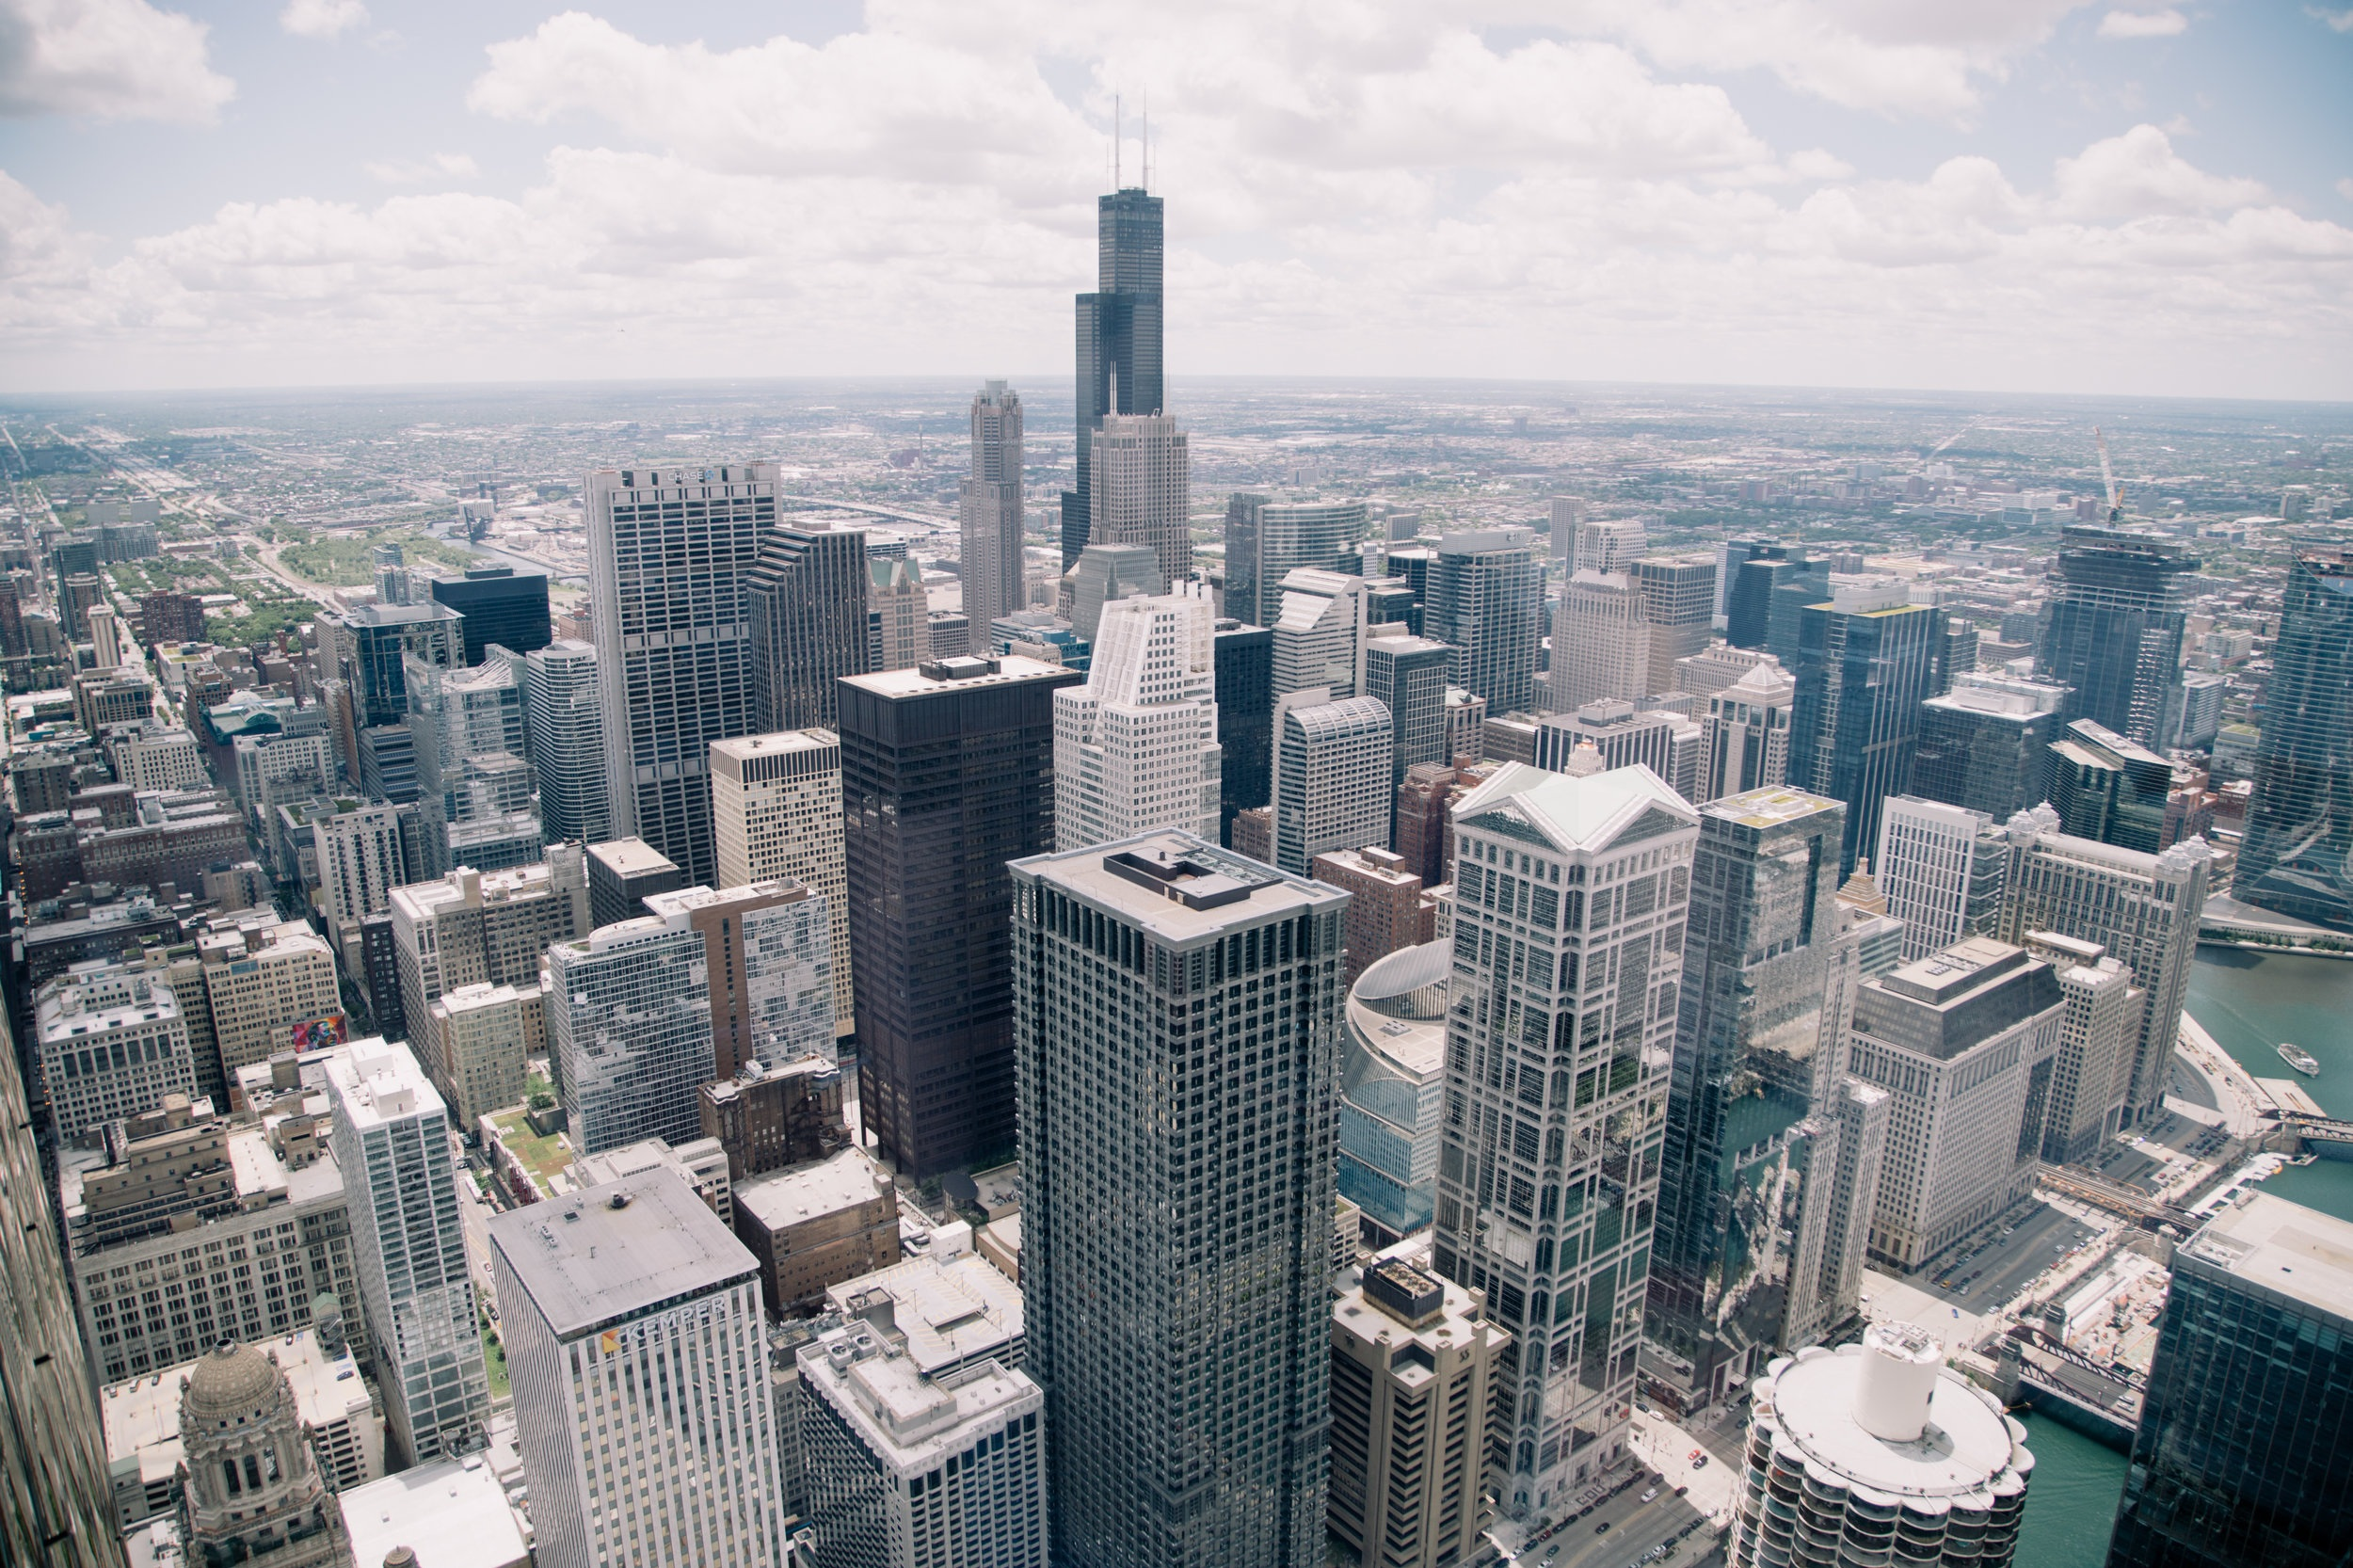 CHICAGO - Gold Coast, Lincoln Park, River North, Bucktown, West Loop, and more